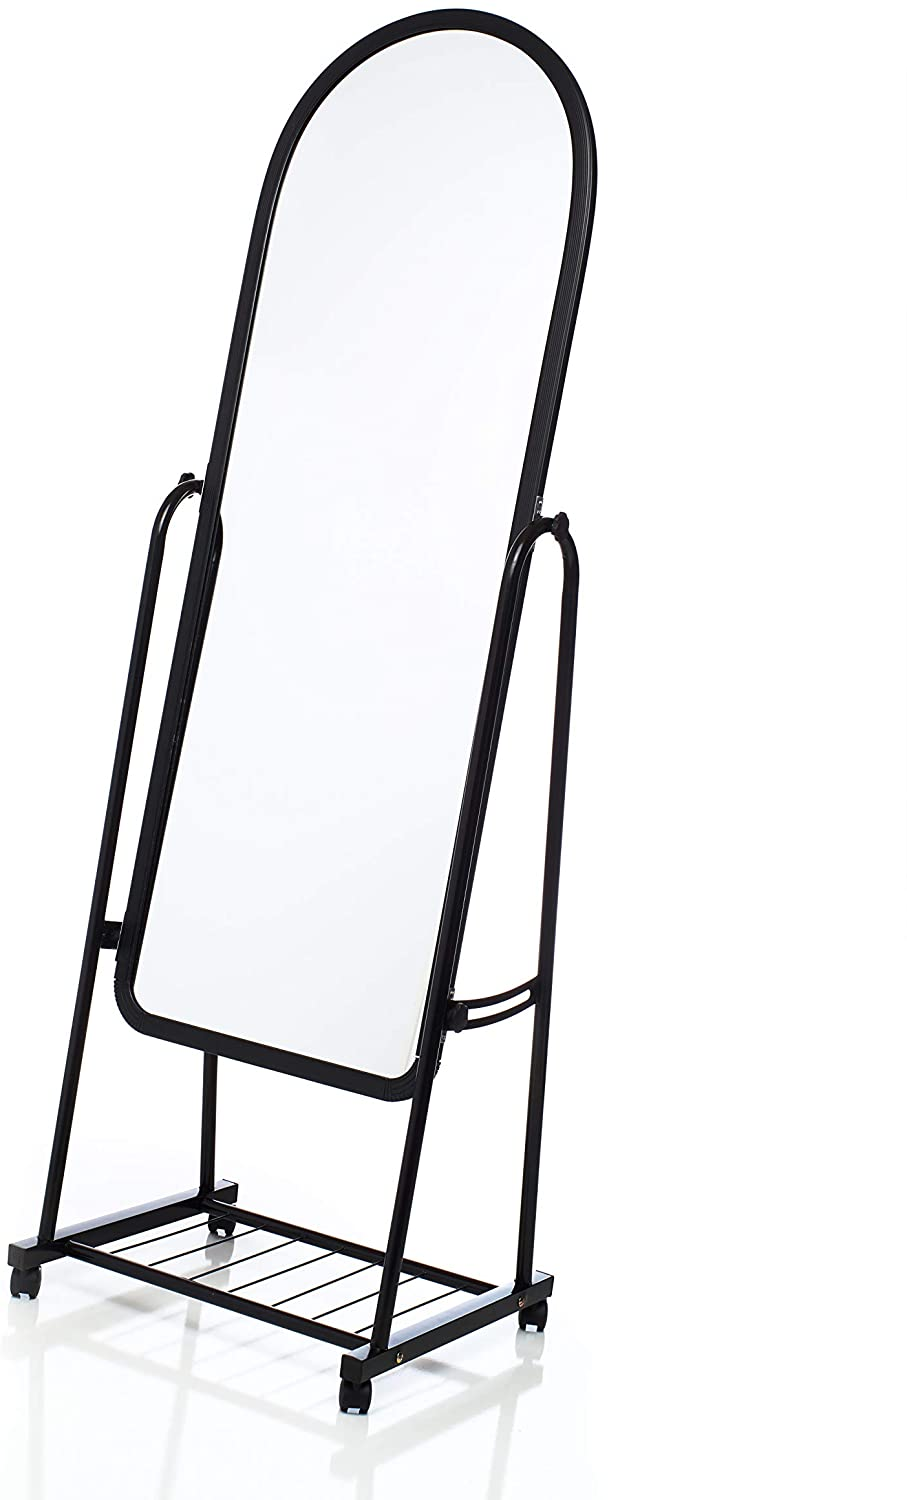 Full Length Standing Mirror on Wheels by OMISHOME - Stand Up Mirror with Metal Frame - Tiltable Mirror on Rollers